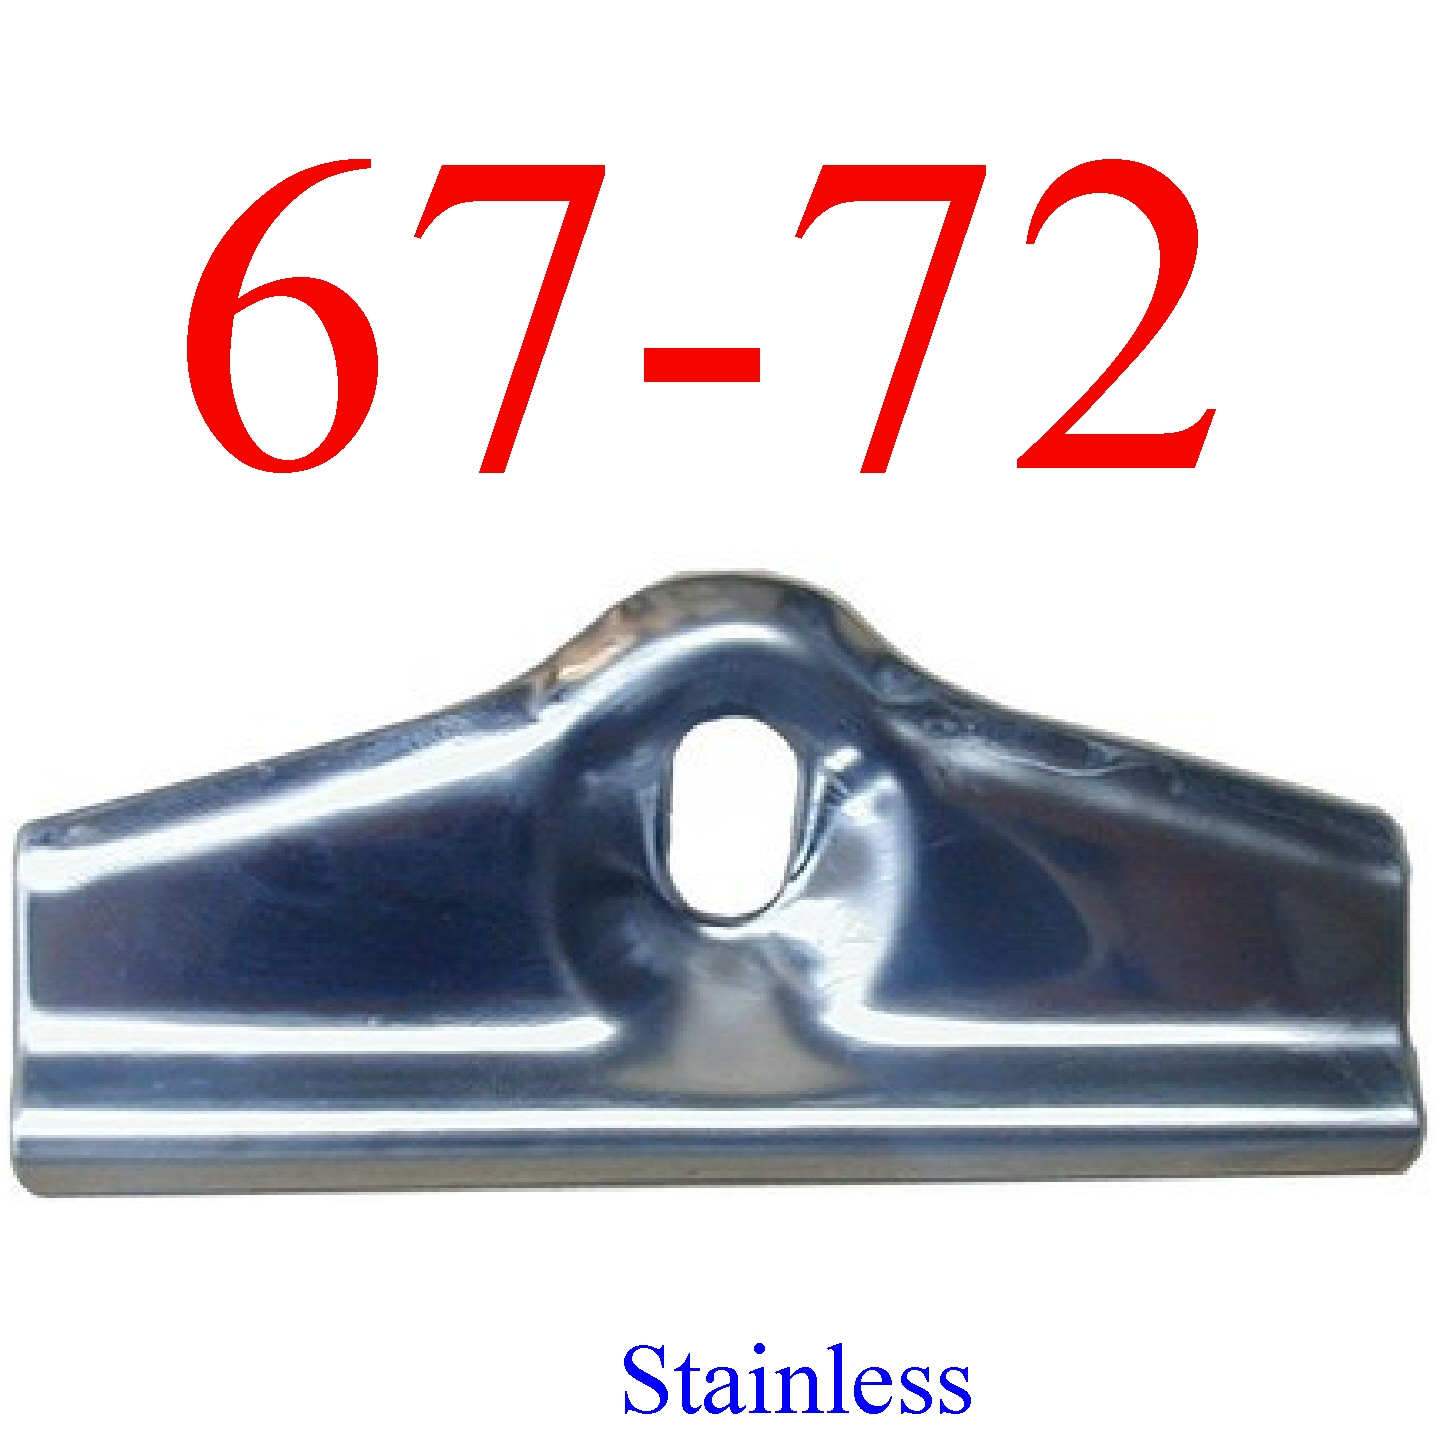 67-72 Stainless Chevy Battery Hold Down Bracket